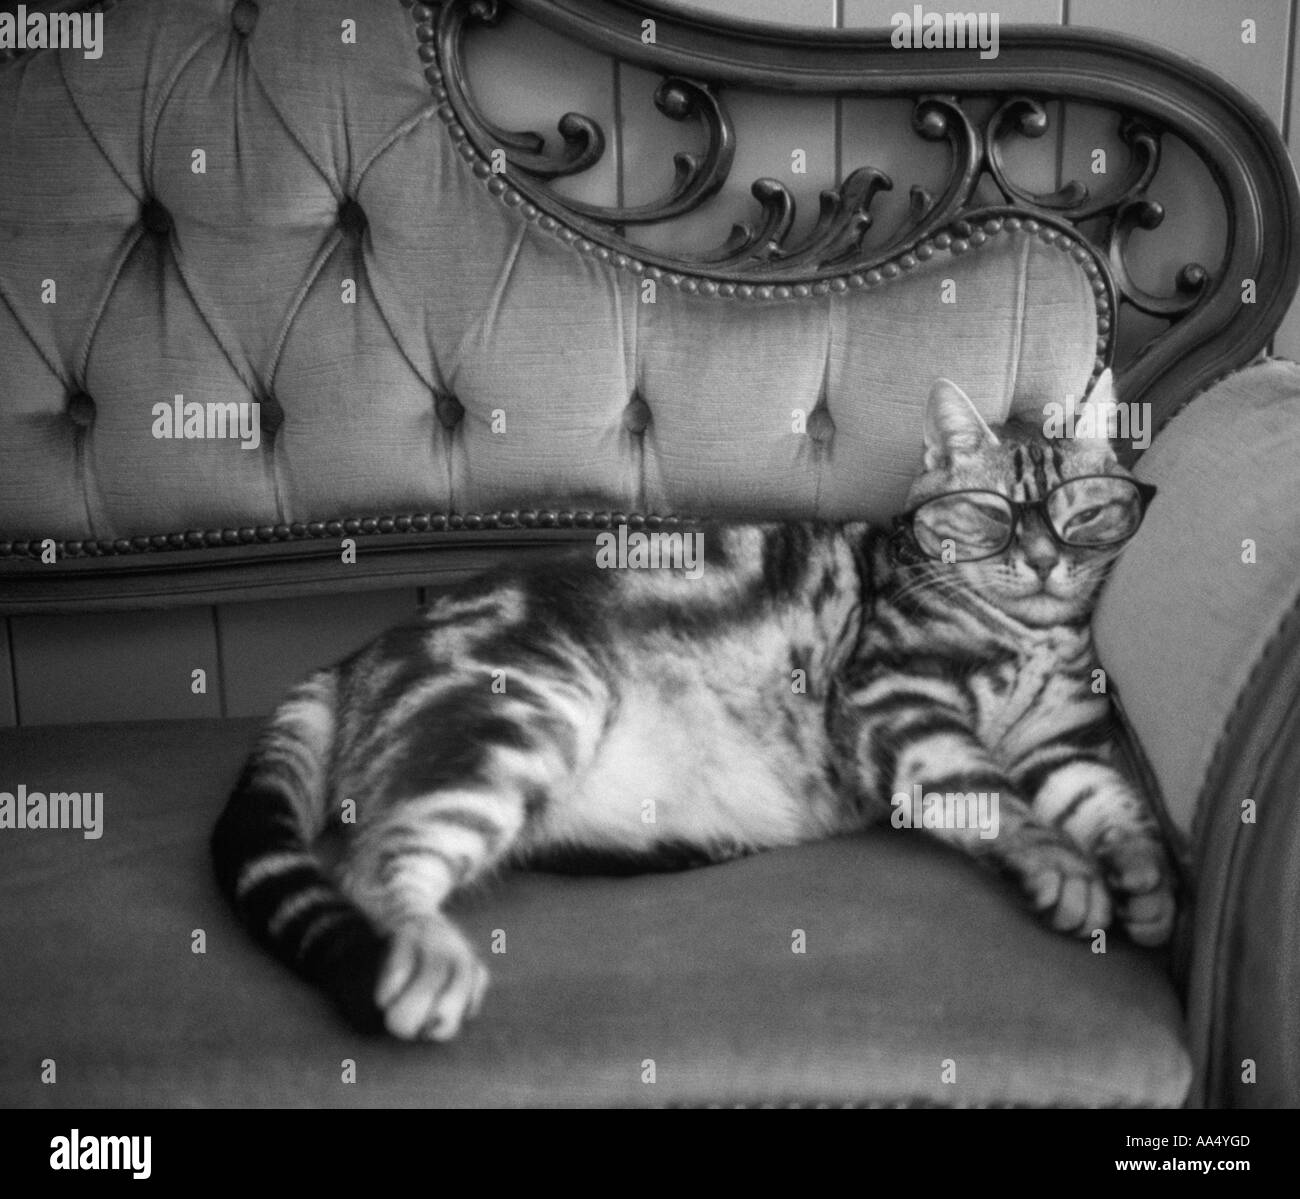 Cats, Glasses, American Short Hair, Stripe, Sofa, Chair, Black And White,  Black, White, Gray, Mono, Tone, Relax, Sleep, Funny